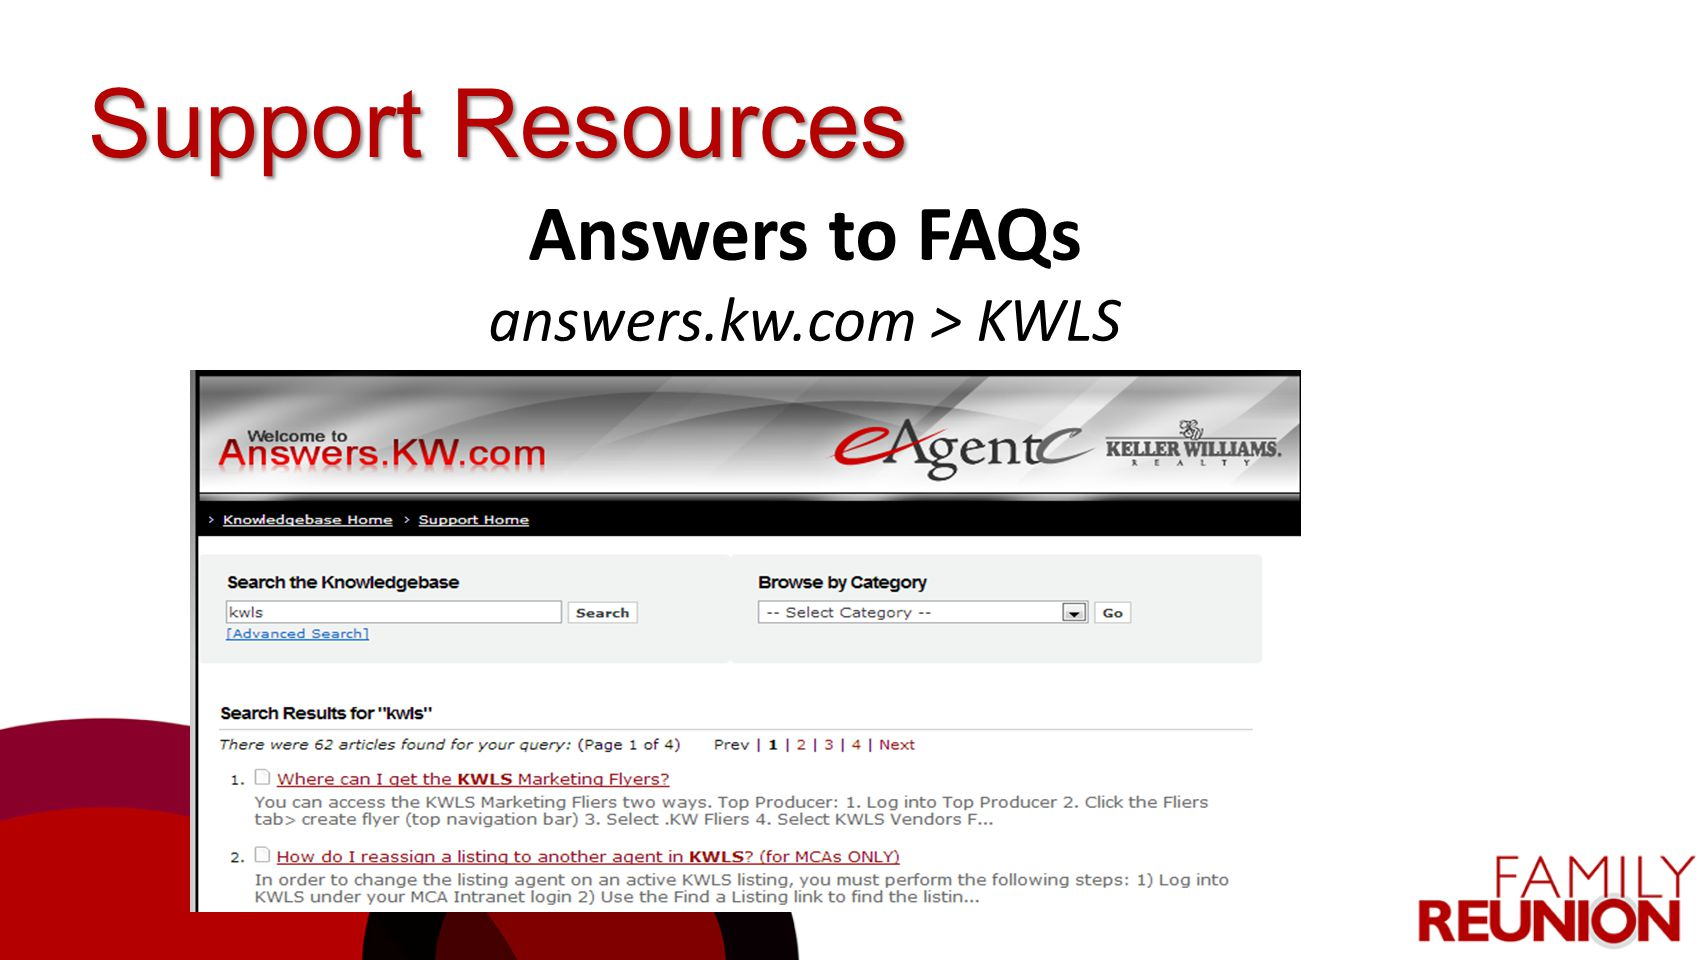 answers.kw.com > KWLS